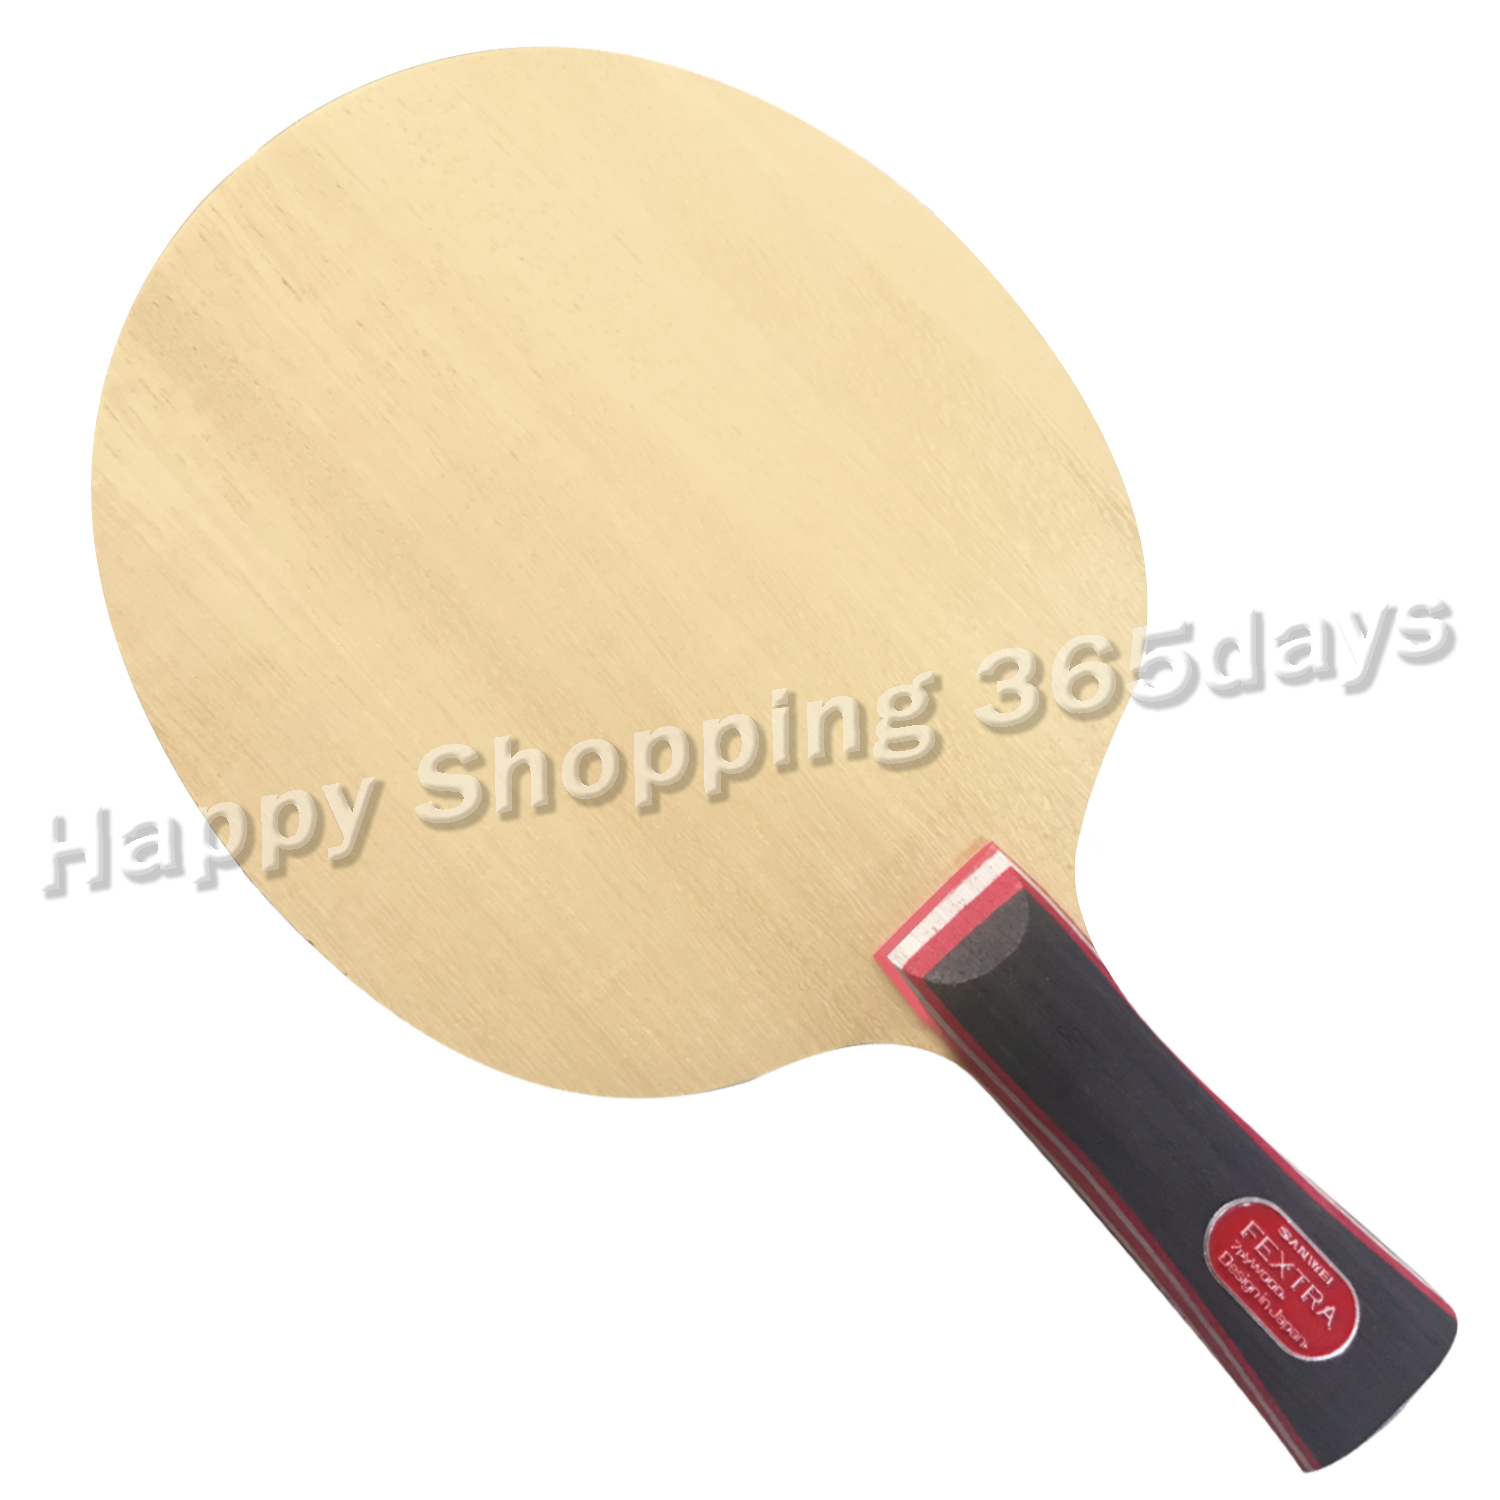 Sanwei FEXTRA 7 (Nordic VII) Table Tennis Blade (7 Ply Wood, Japan Tech, STIGA Clipper CL Structure) Racket Ping Pong Bat Paddle